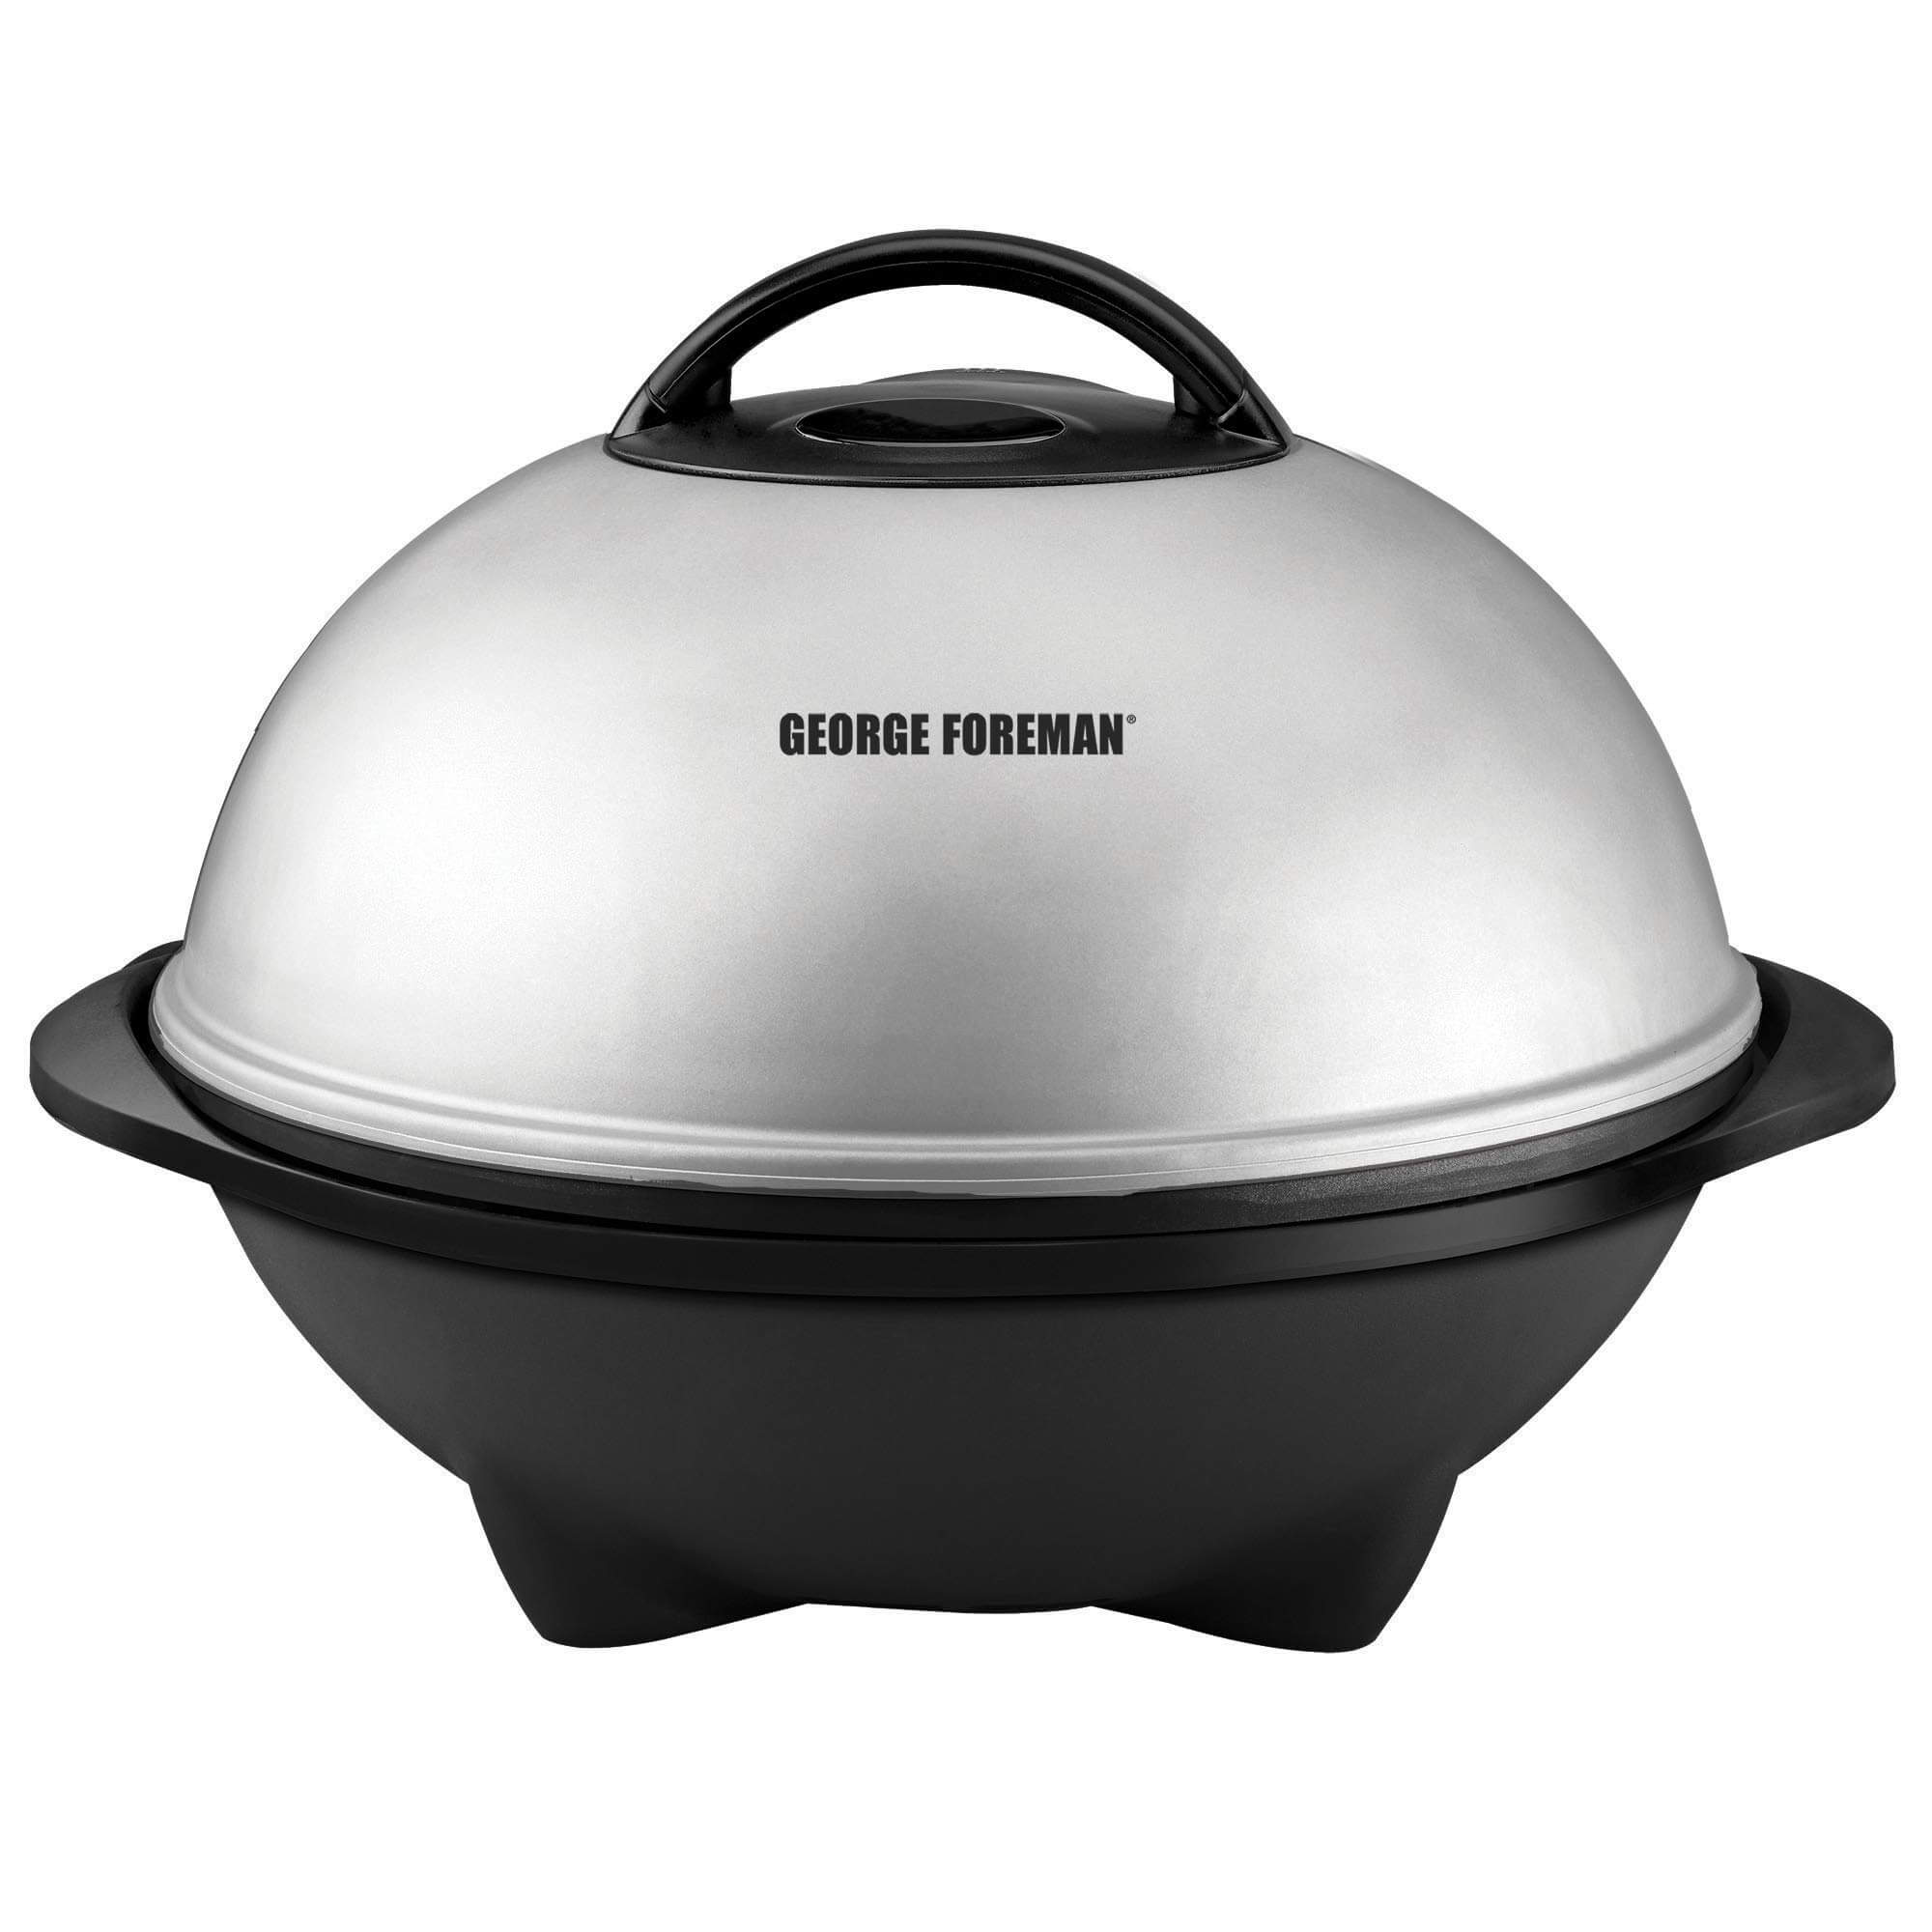 george foreman indoor grill, George Foreman 15-Serving Indoor/Outdoor Electric Grill, george foreman smokeless grill, best indoor grill for steaks, best indoor grill griddle combo